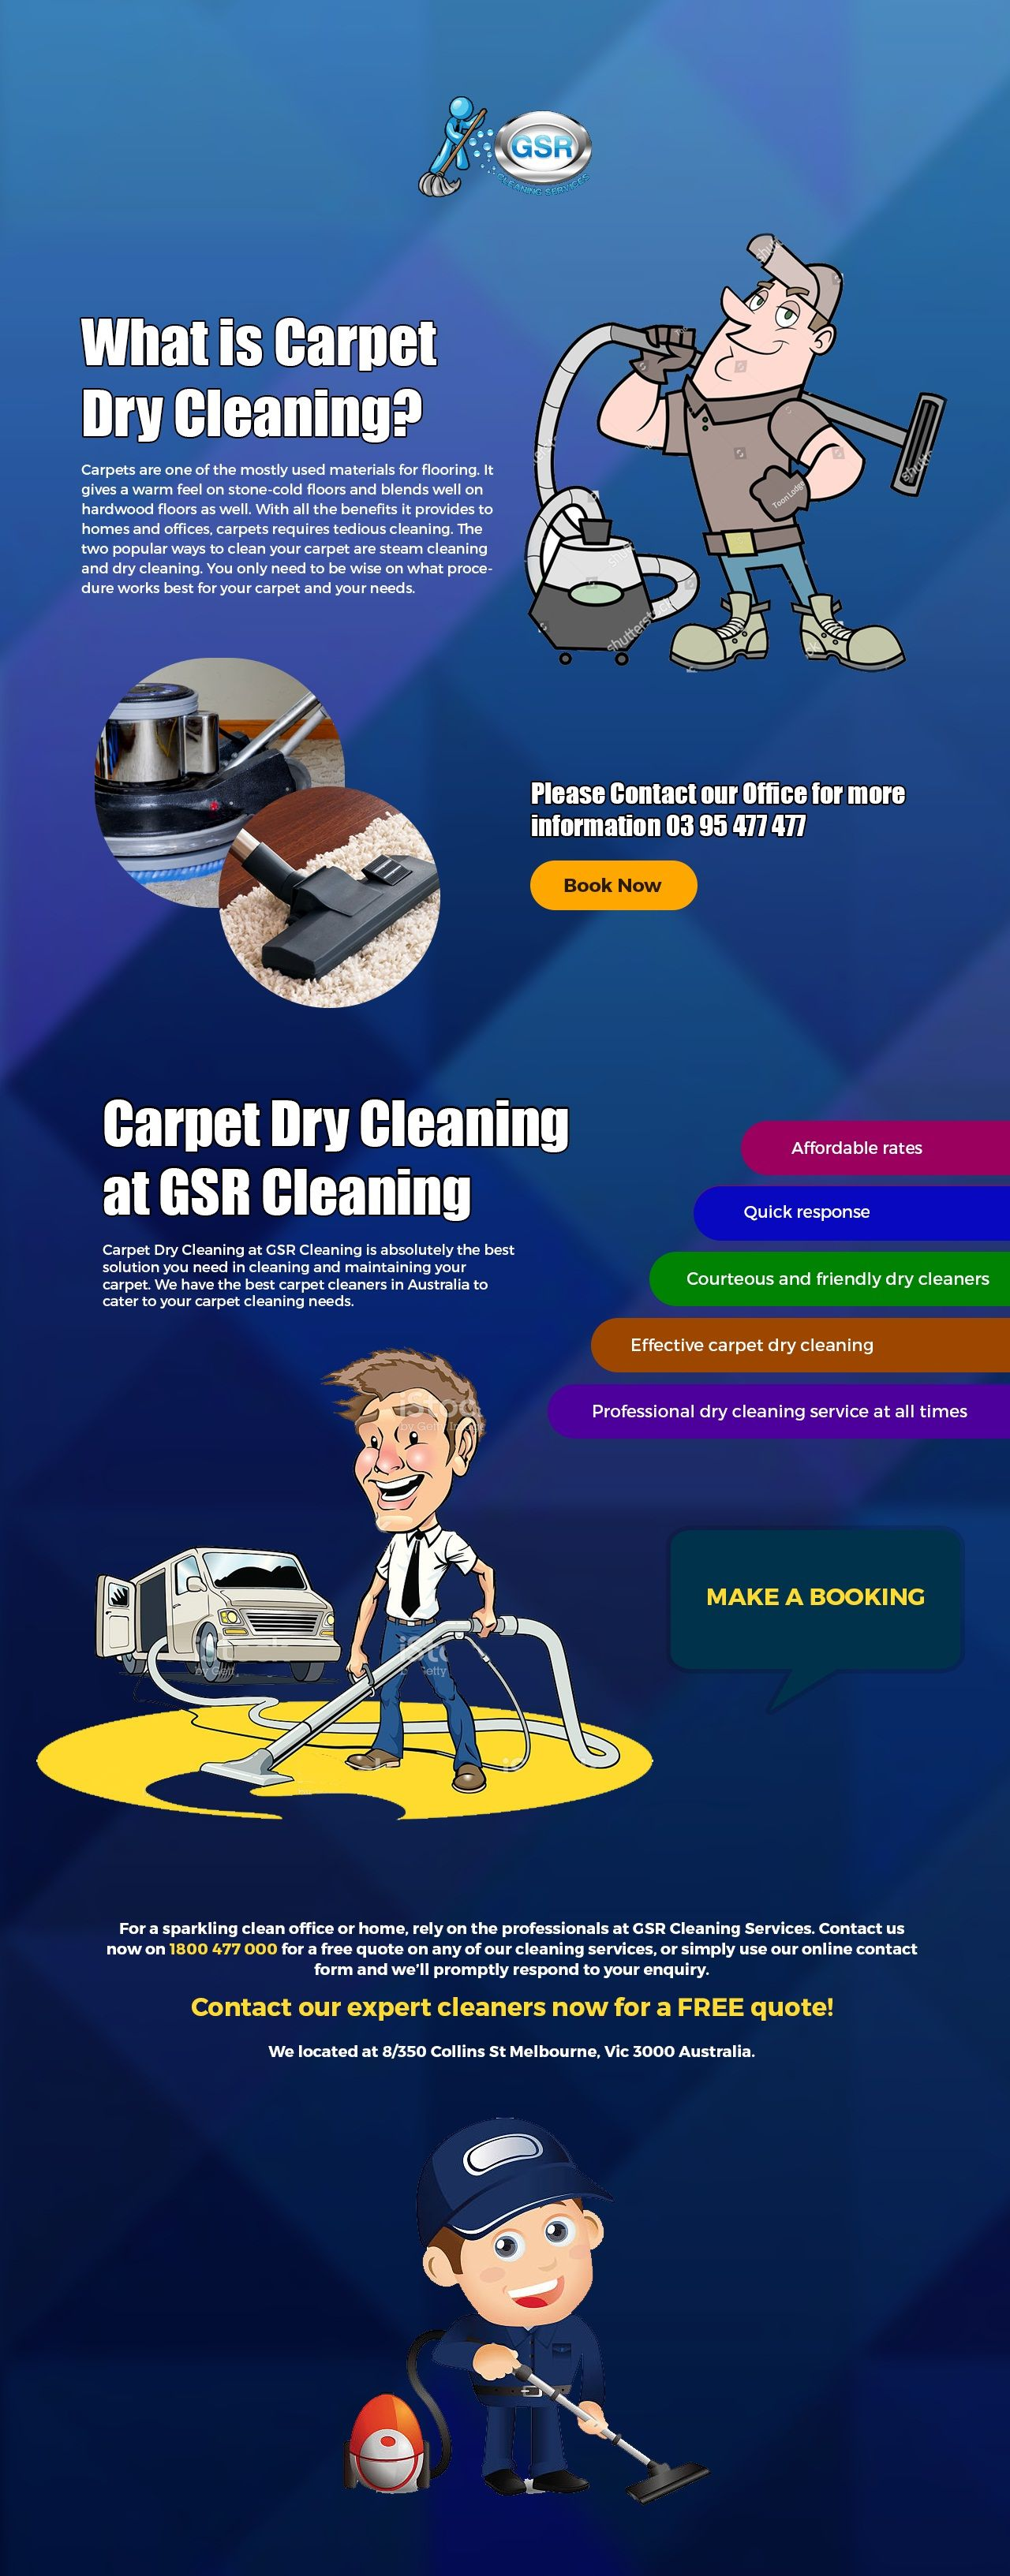 Carpet Dry Cleaning Melbourne Dry Carpet Cleaning Dry Cleaning Services Cleaning